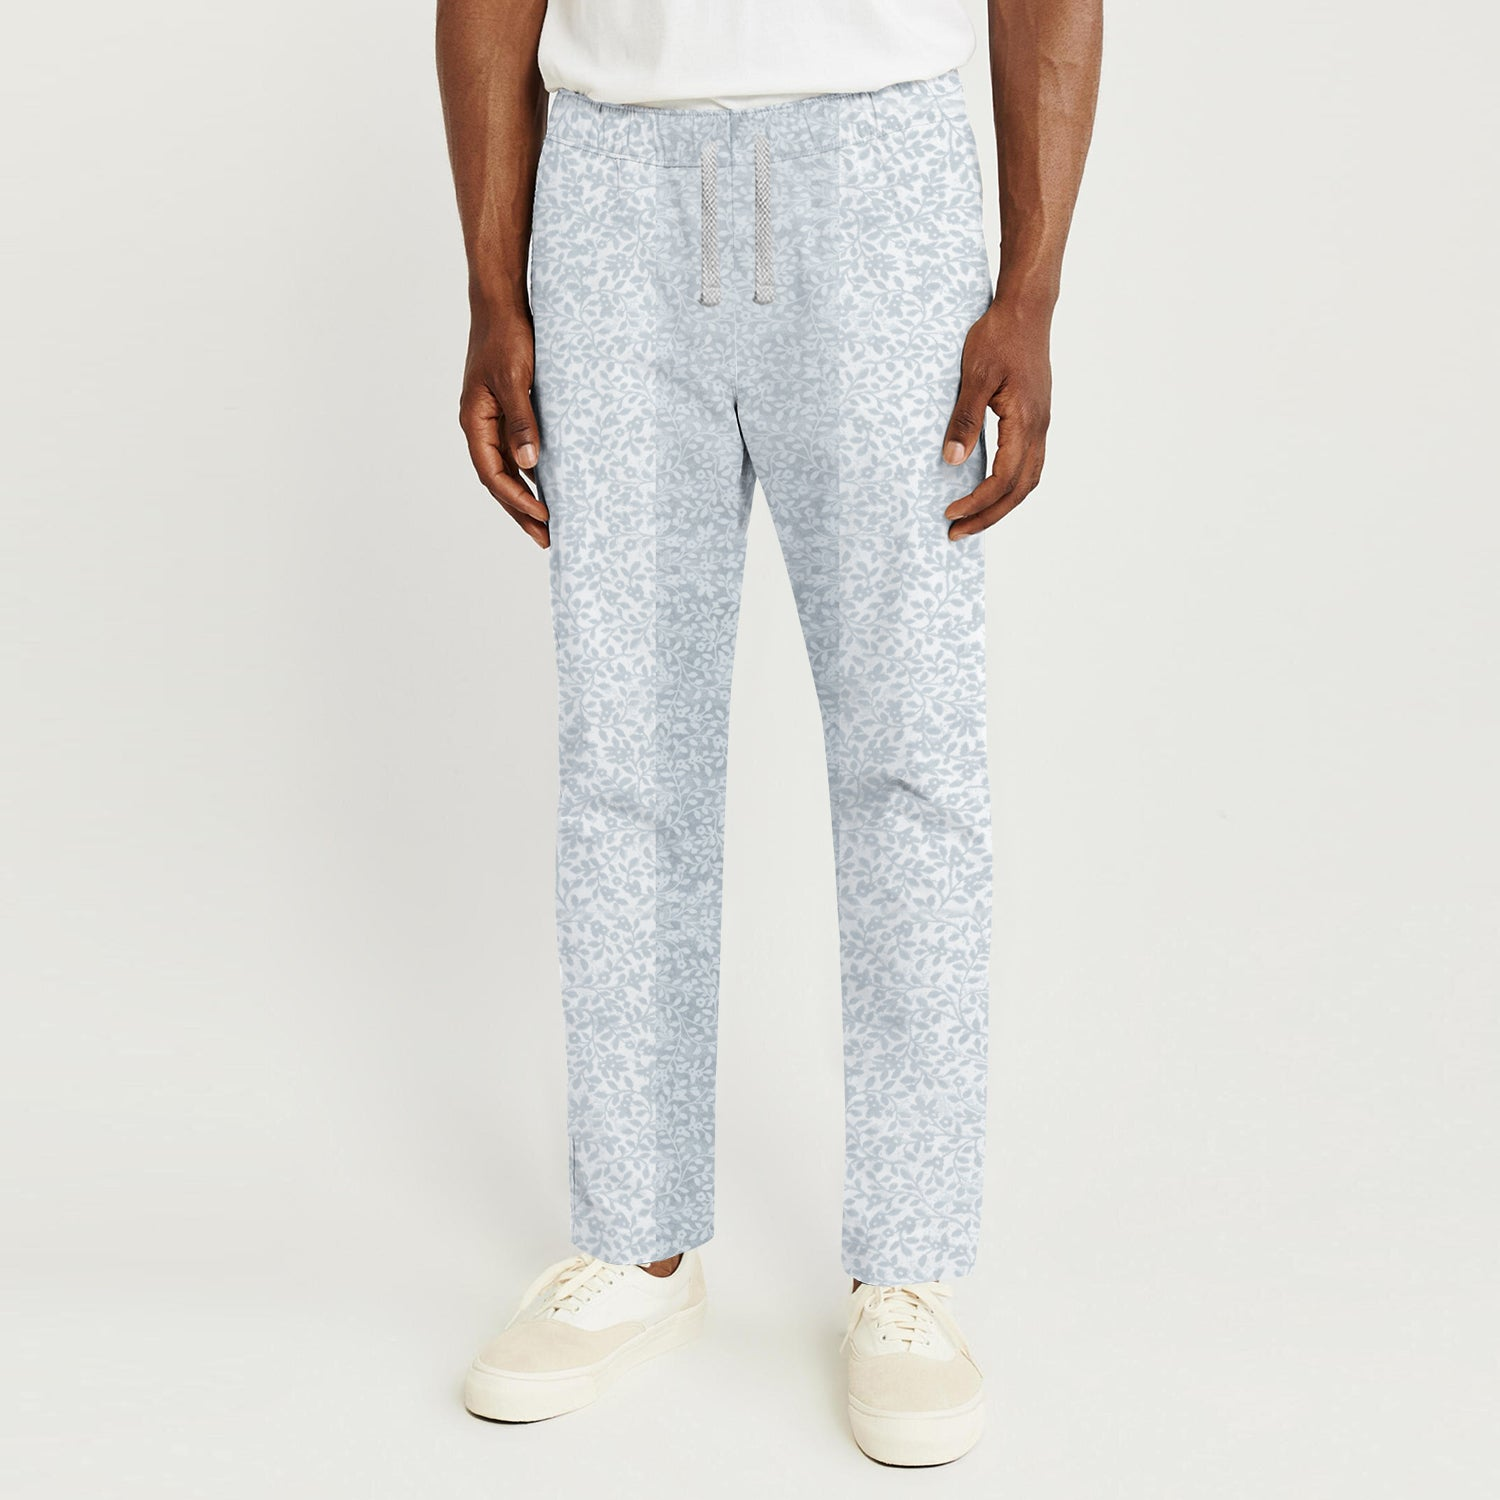 Zara Man Slim Fit Flannel Trouser For Men-White with Floral Print-BE9801